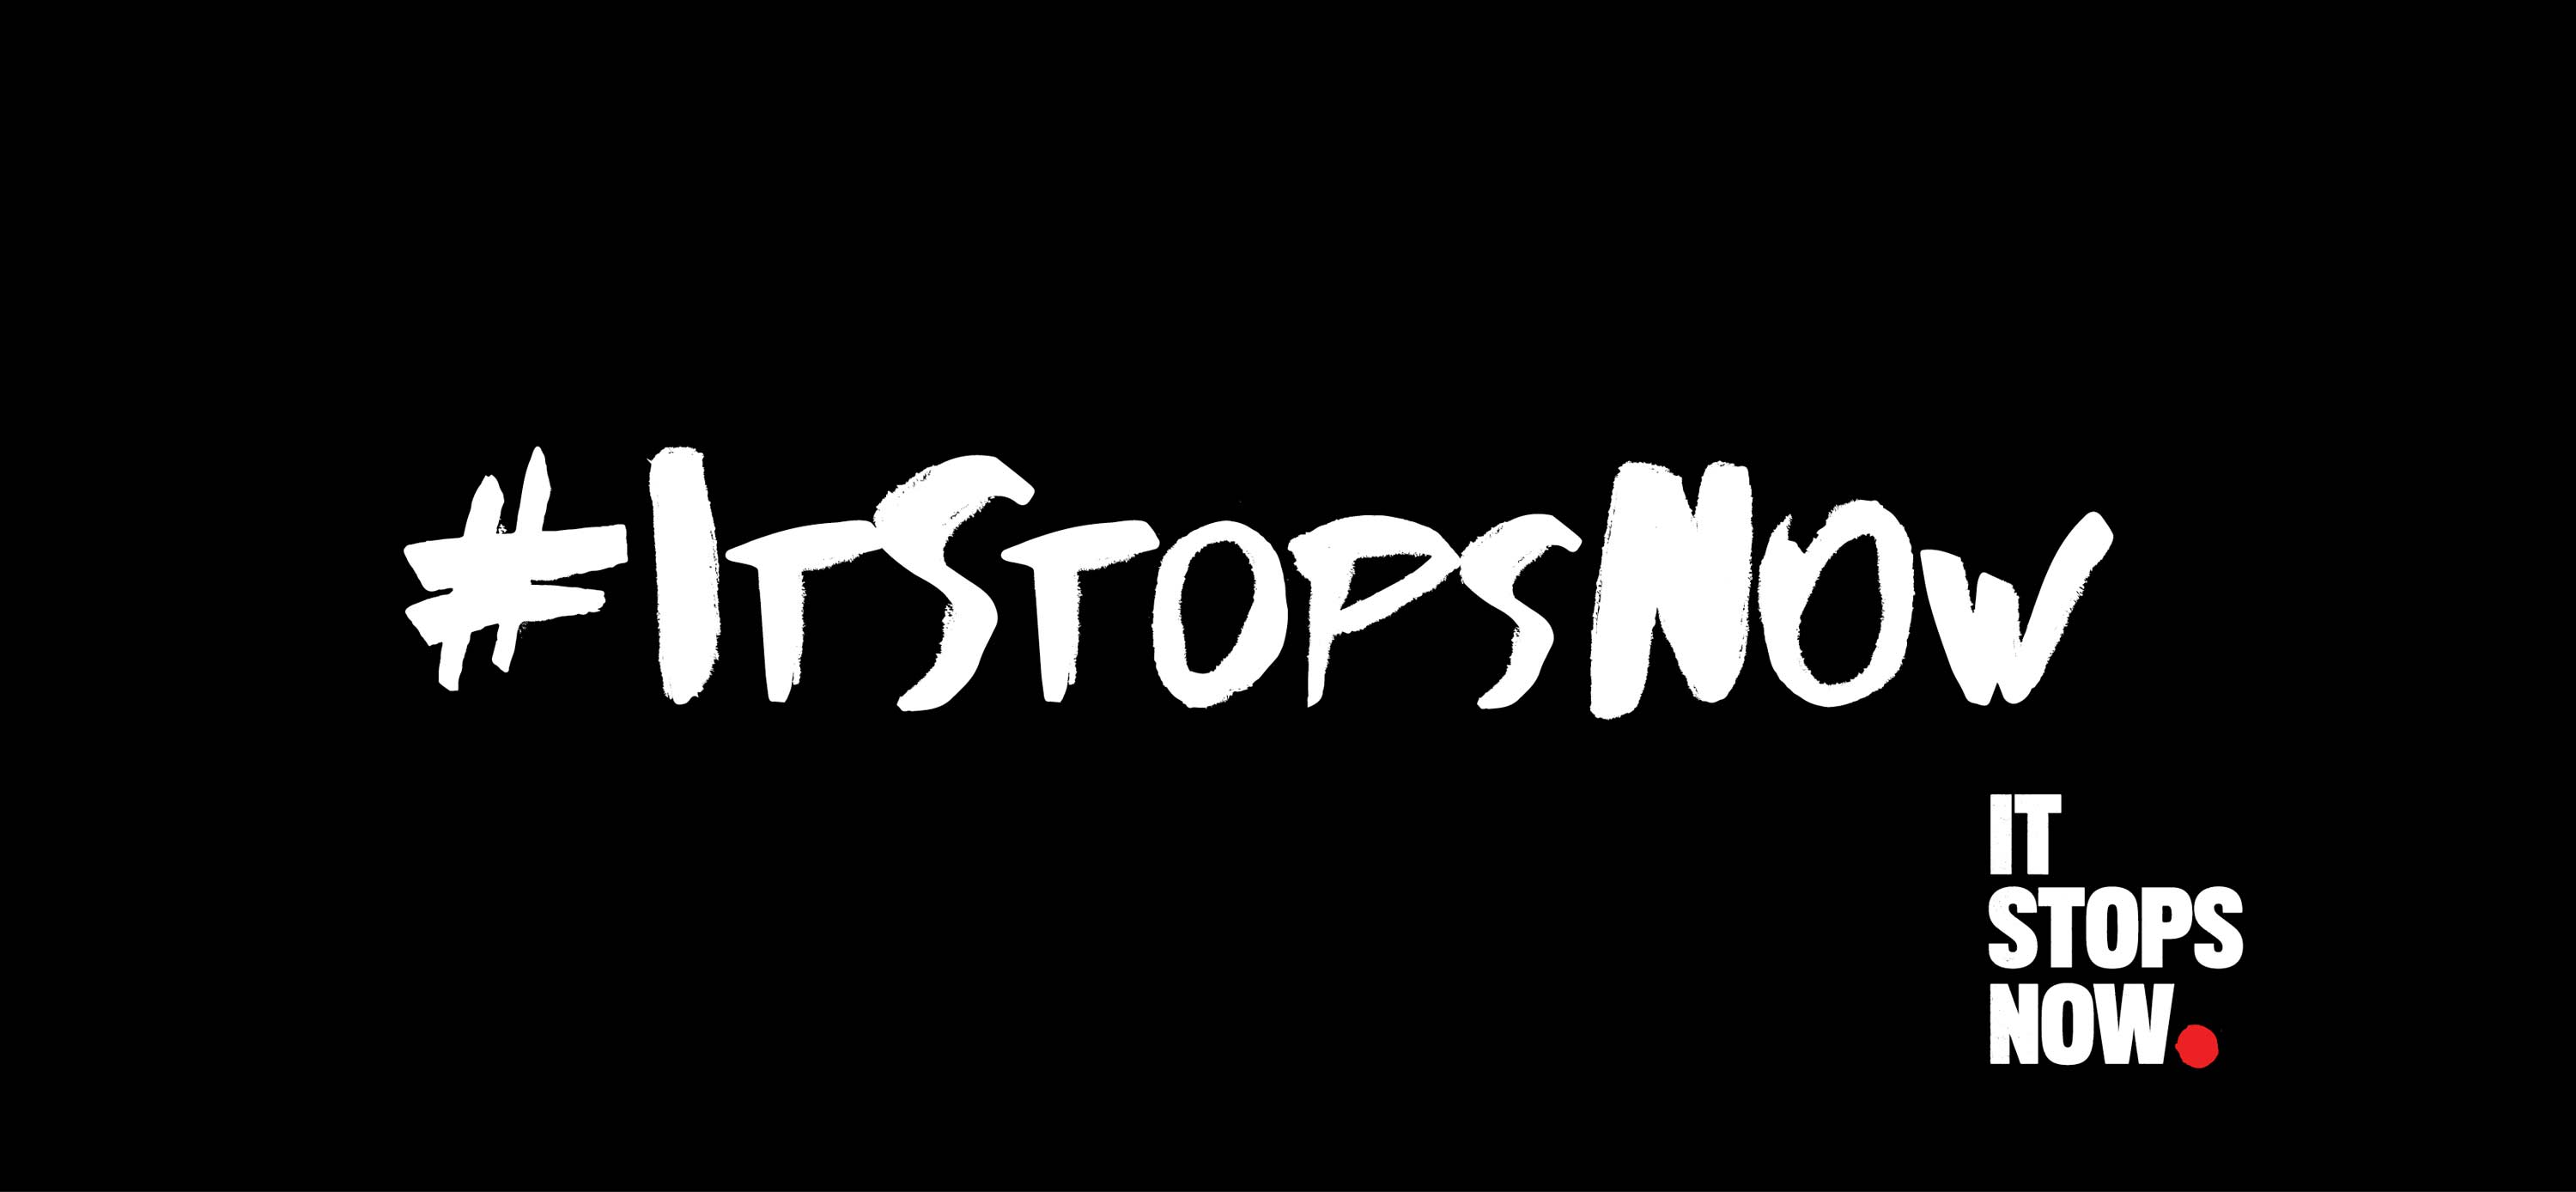 graphic design and logo for It Stops Now European Union Women's Rights Campaign by Piquant